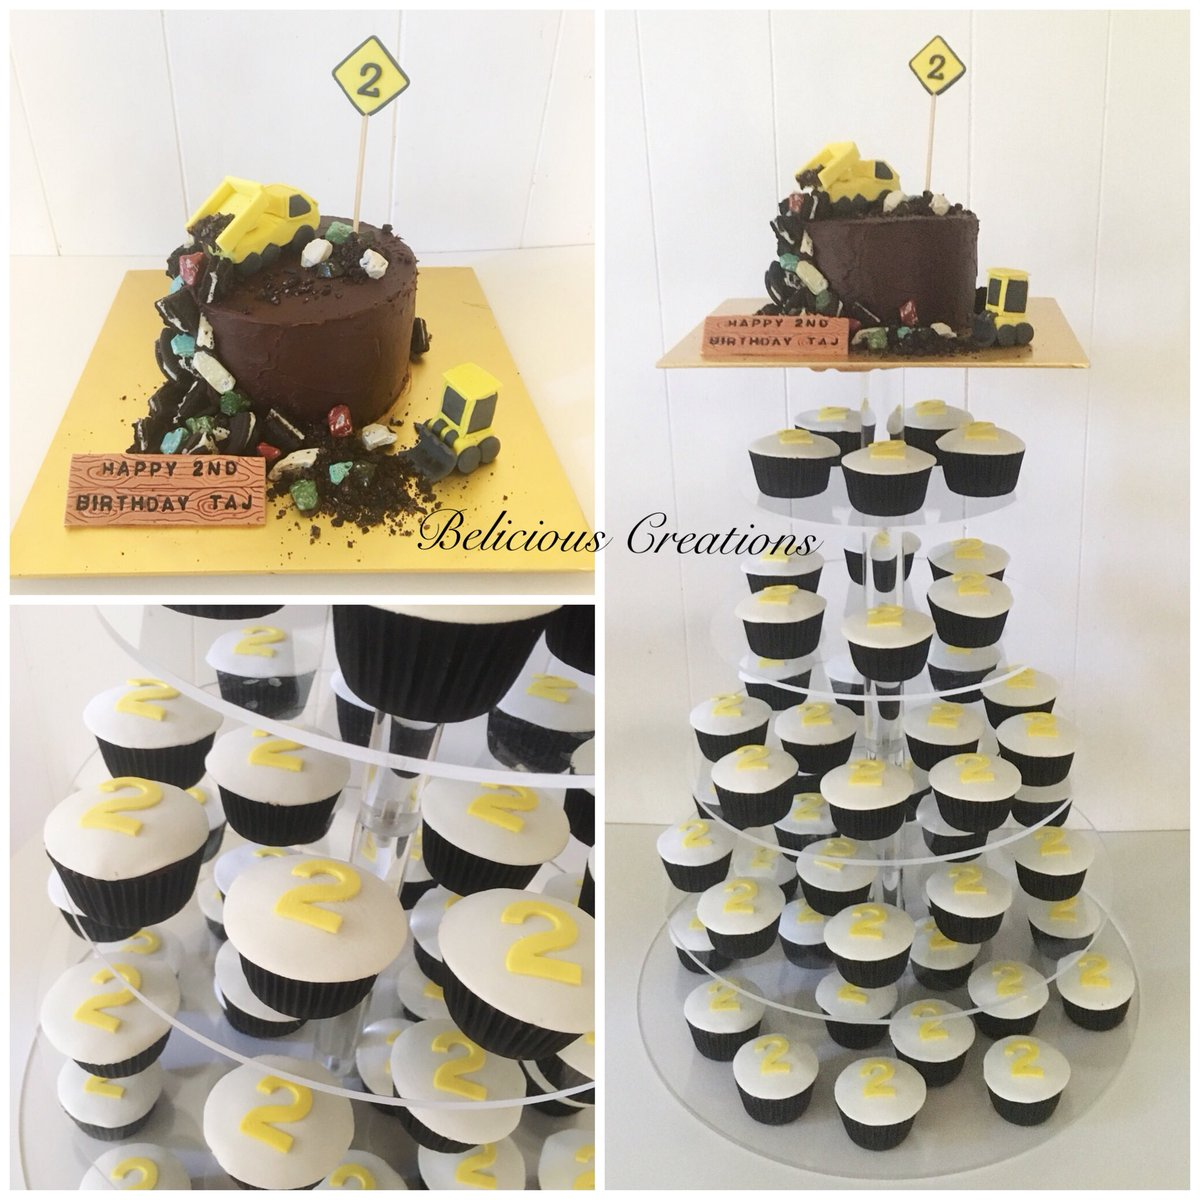 Wondrous Belicious Creations On Twitter A Construction Birthday Cake Is Funny Birthday Cards Online Fluifree Goldxyz